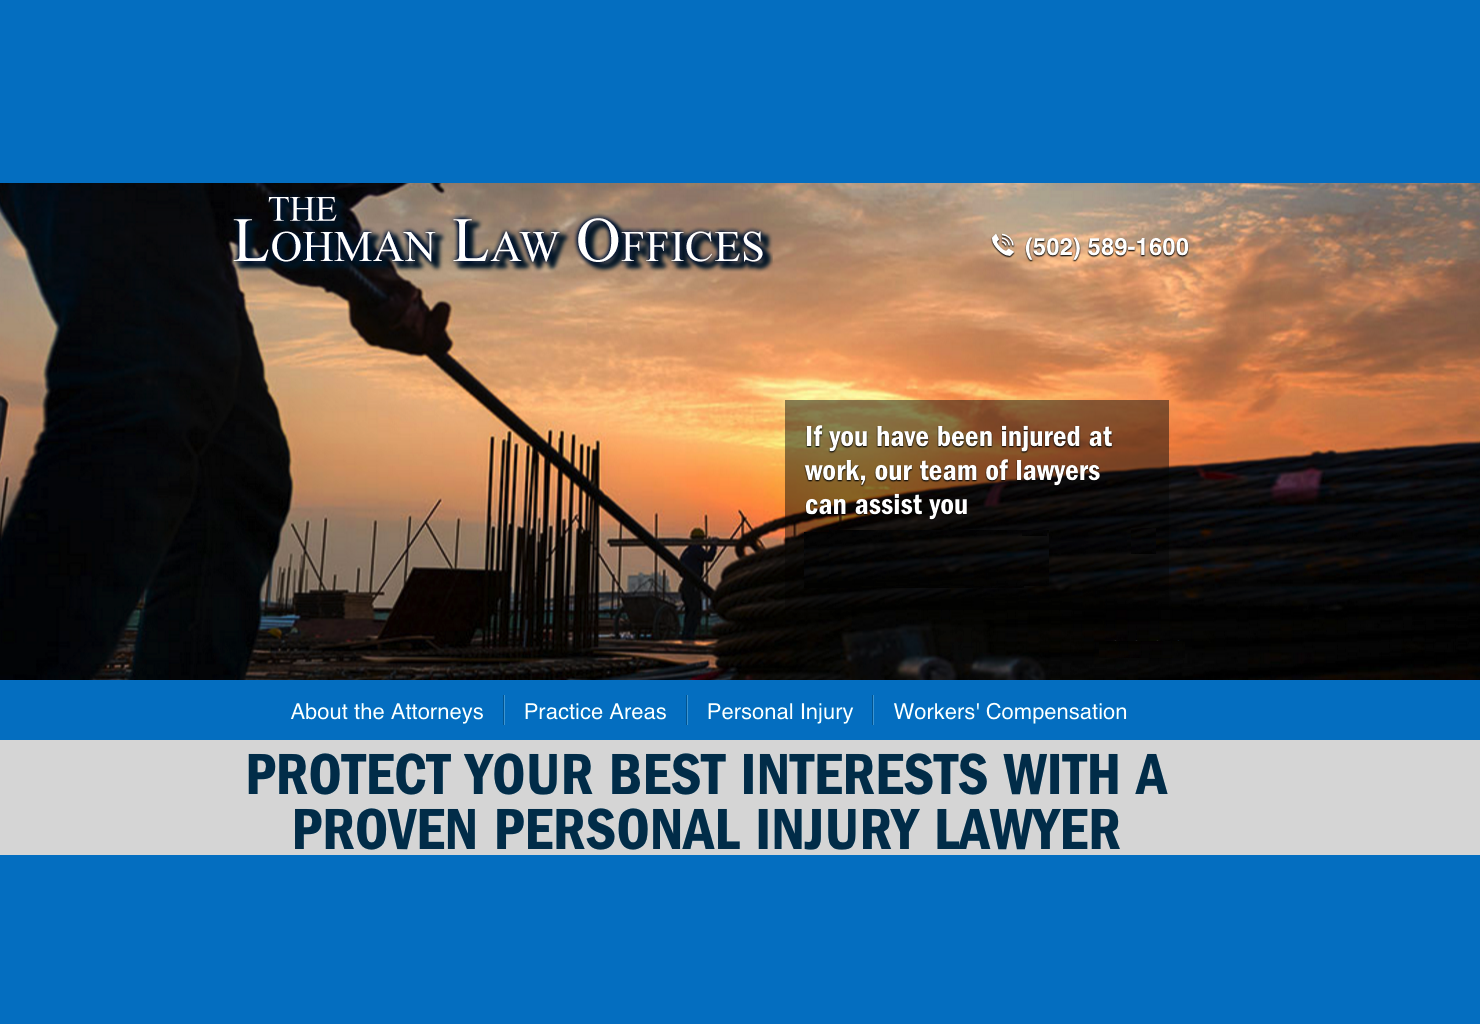 Personal Injury Law Offices Near Me